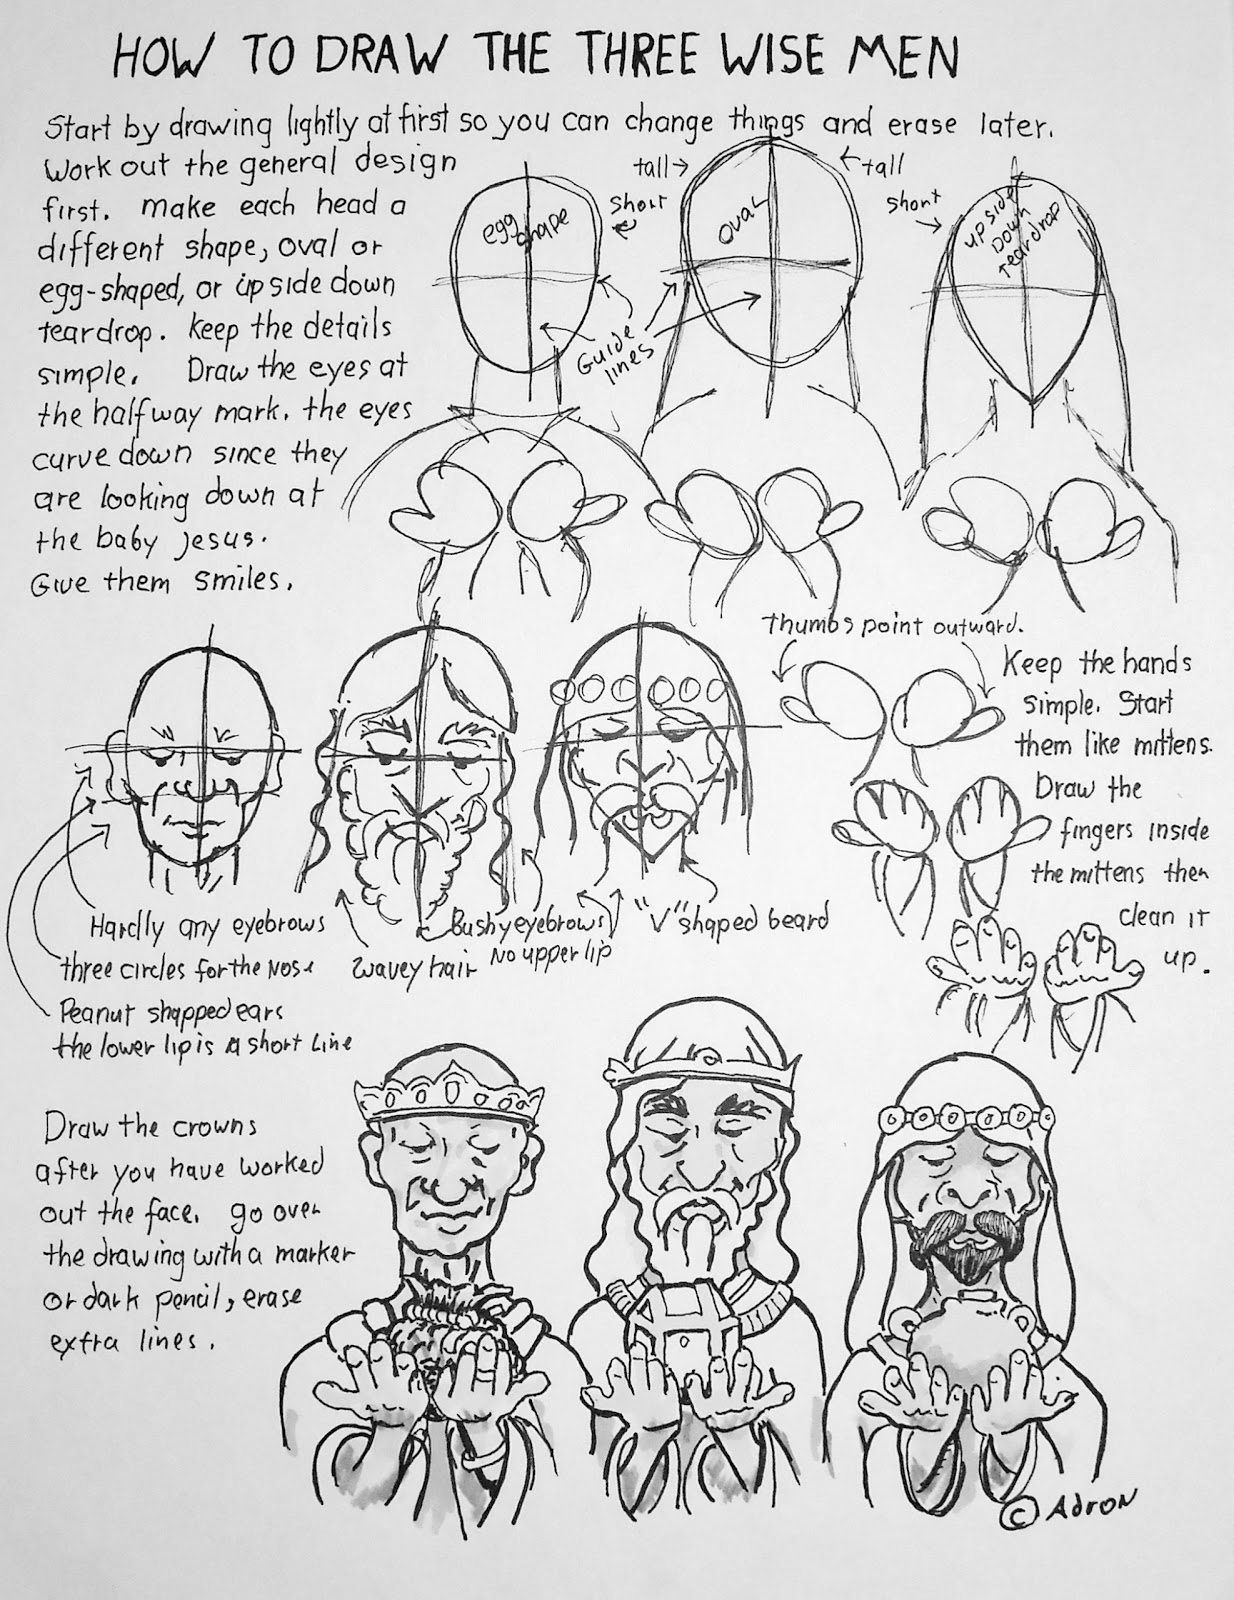 How To Draw Worksheets For The Young Artist How To Draw The Three Wise Men Lesson And Worksheet